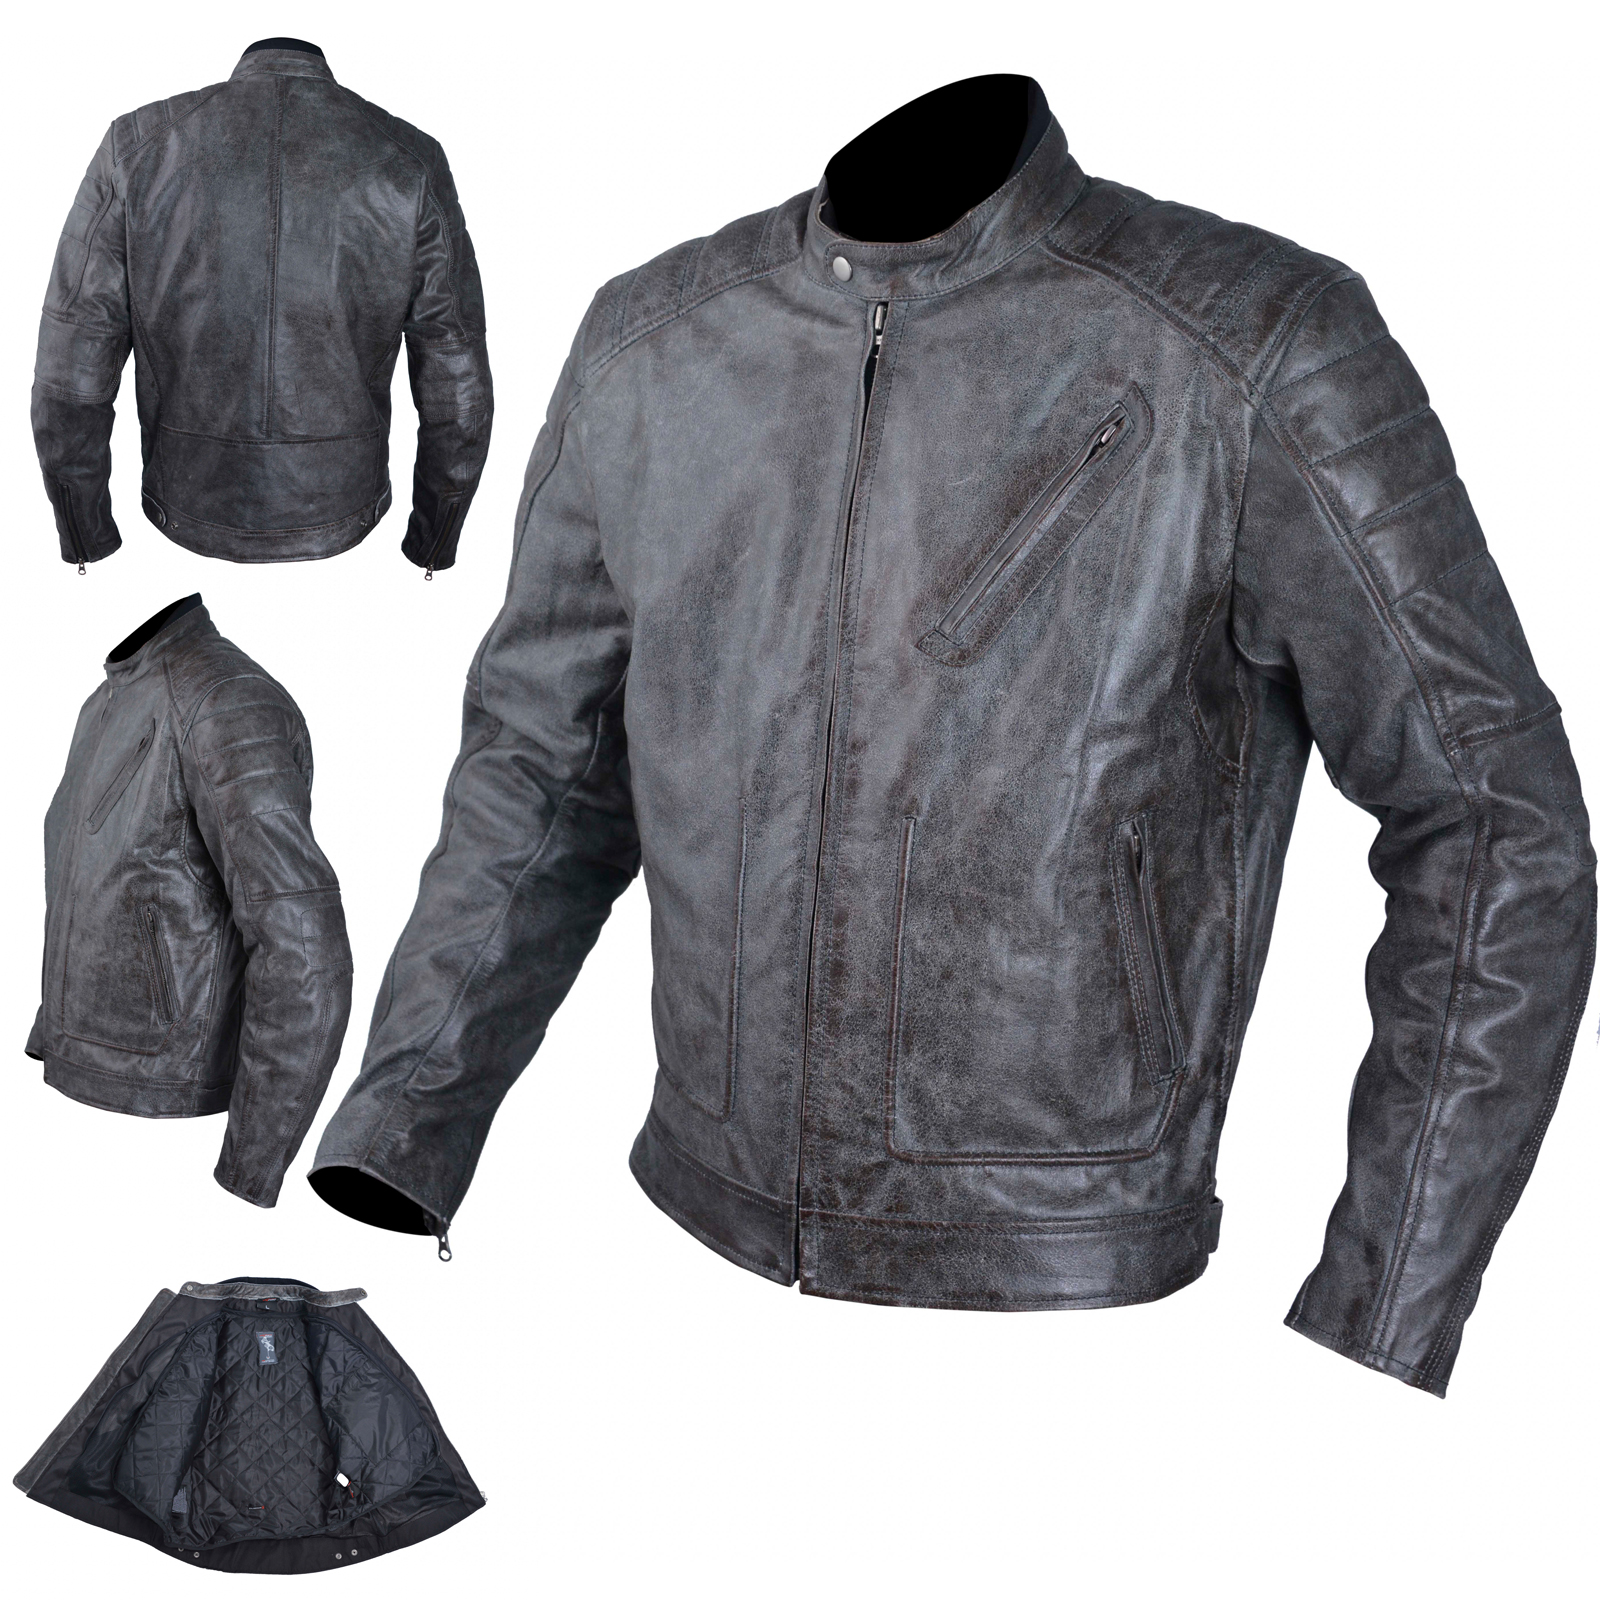 blouson cuir moto veste vintage thermique protections ce. Black Bedroom Furniture Sets. Home Design Ideas